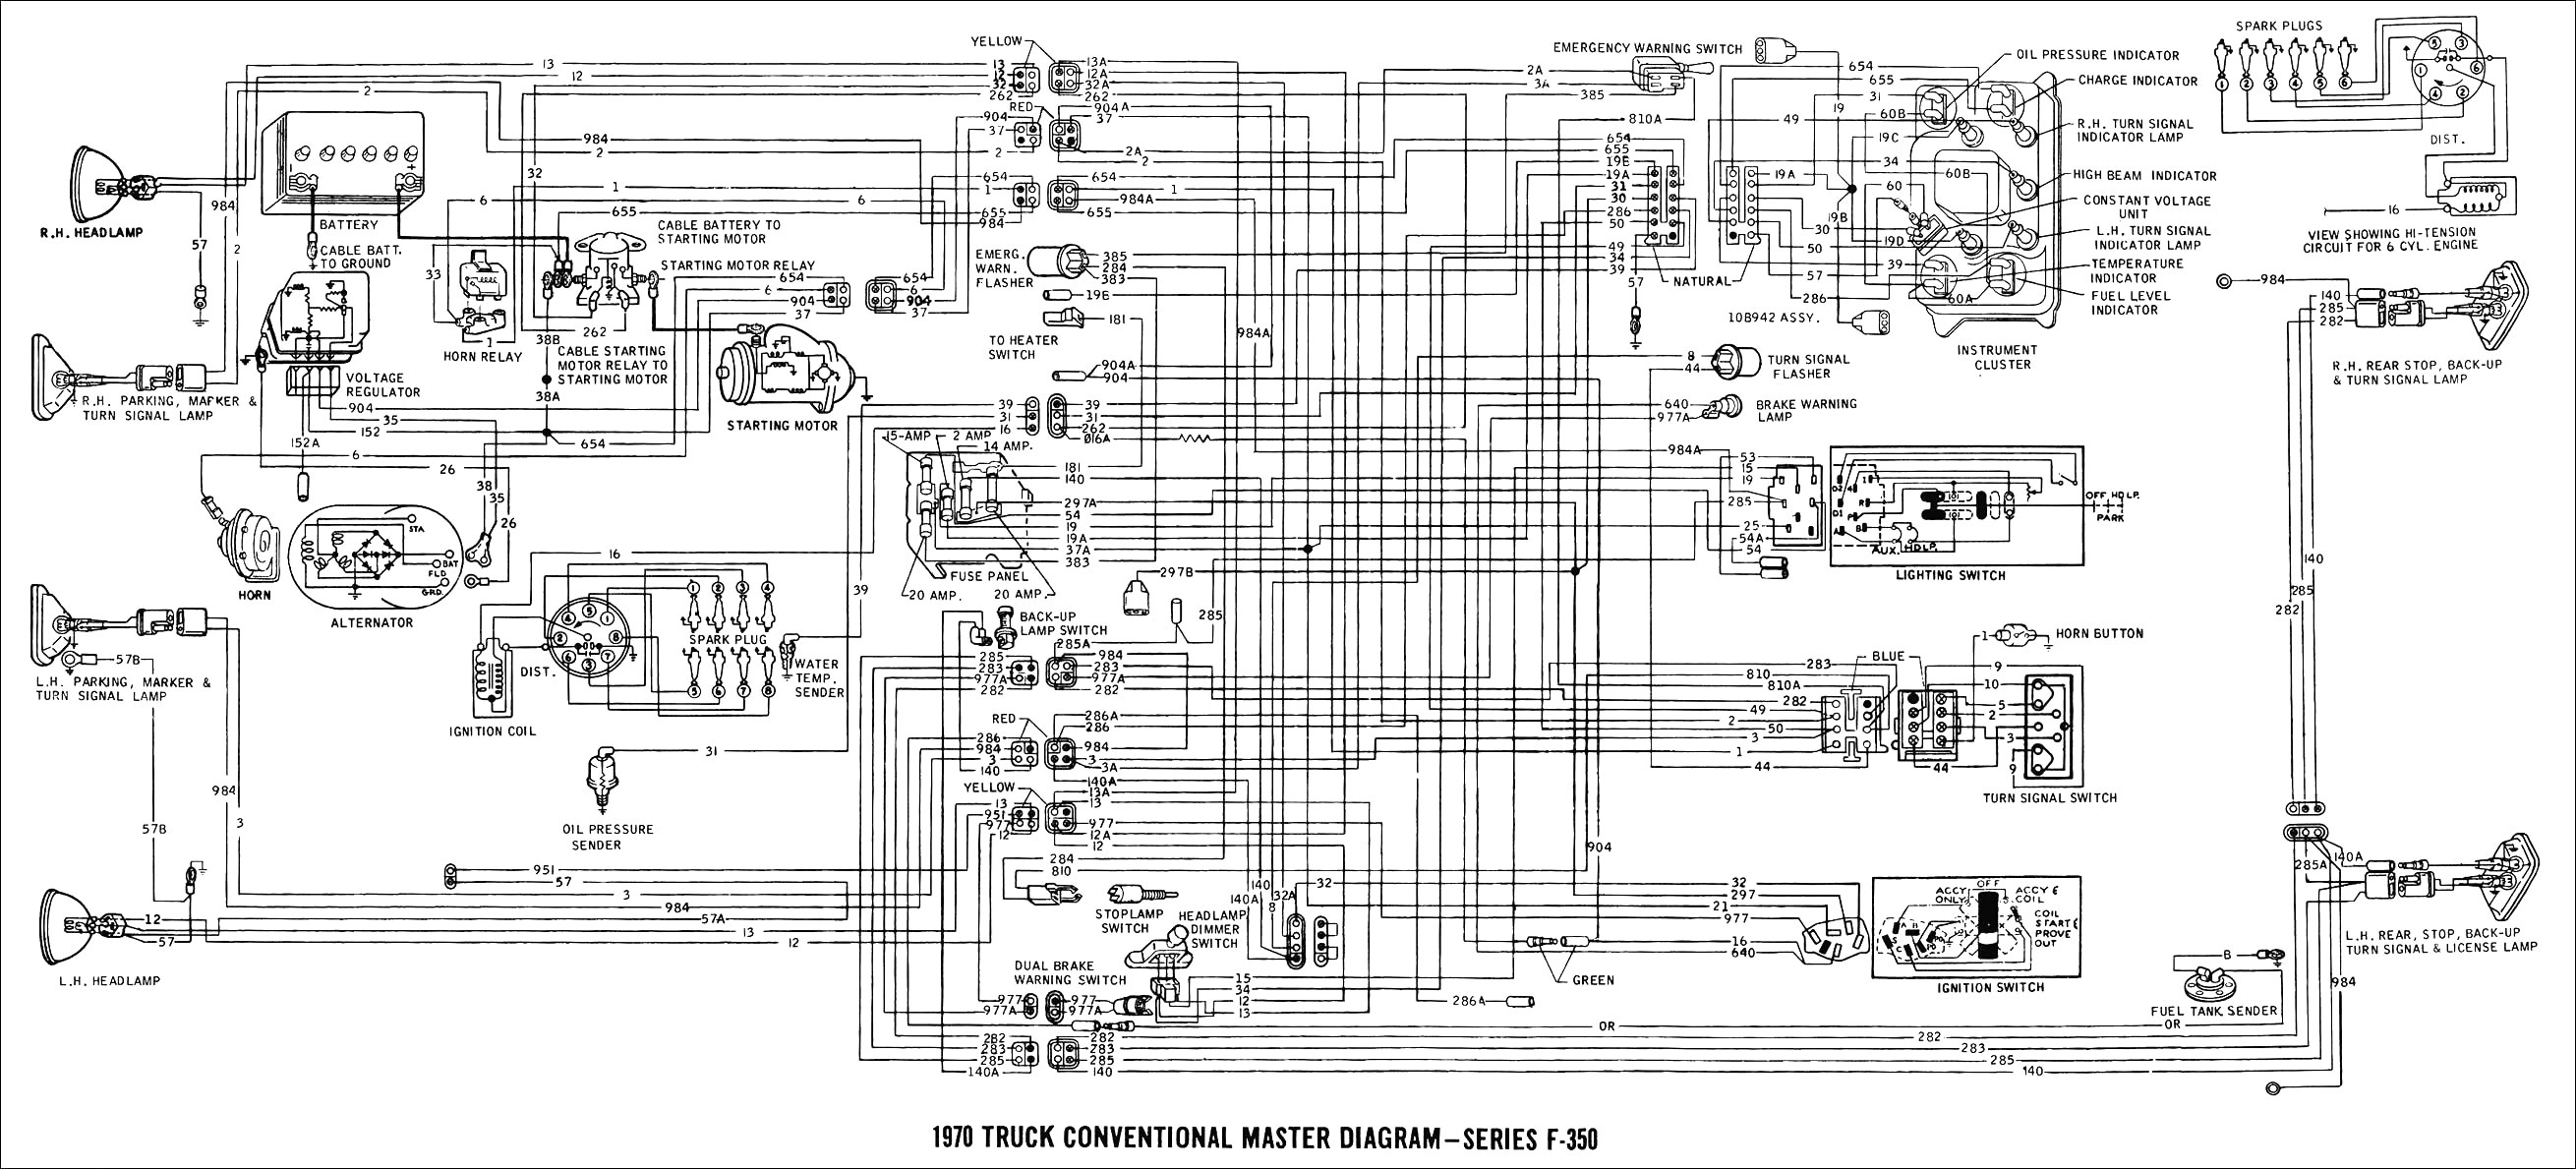 1996 ford ranger wiring diagram awesome wiring diagram image 03 ford ranger wiring diagram 1991 ford ranger radio wiring diagram unique 1996 ford ranger wiring 1999 ford ranger pcm